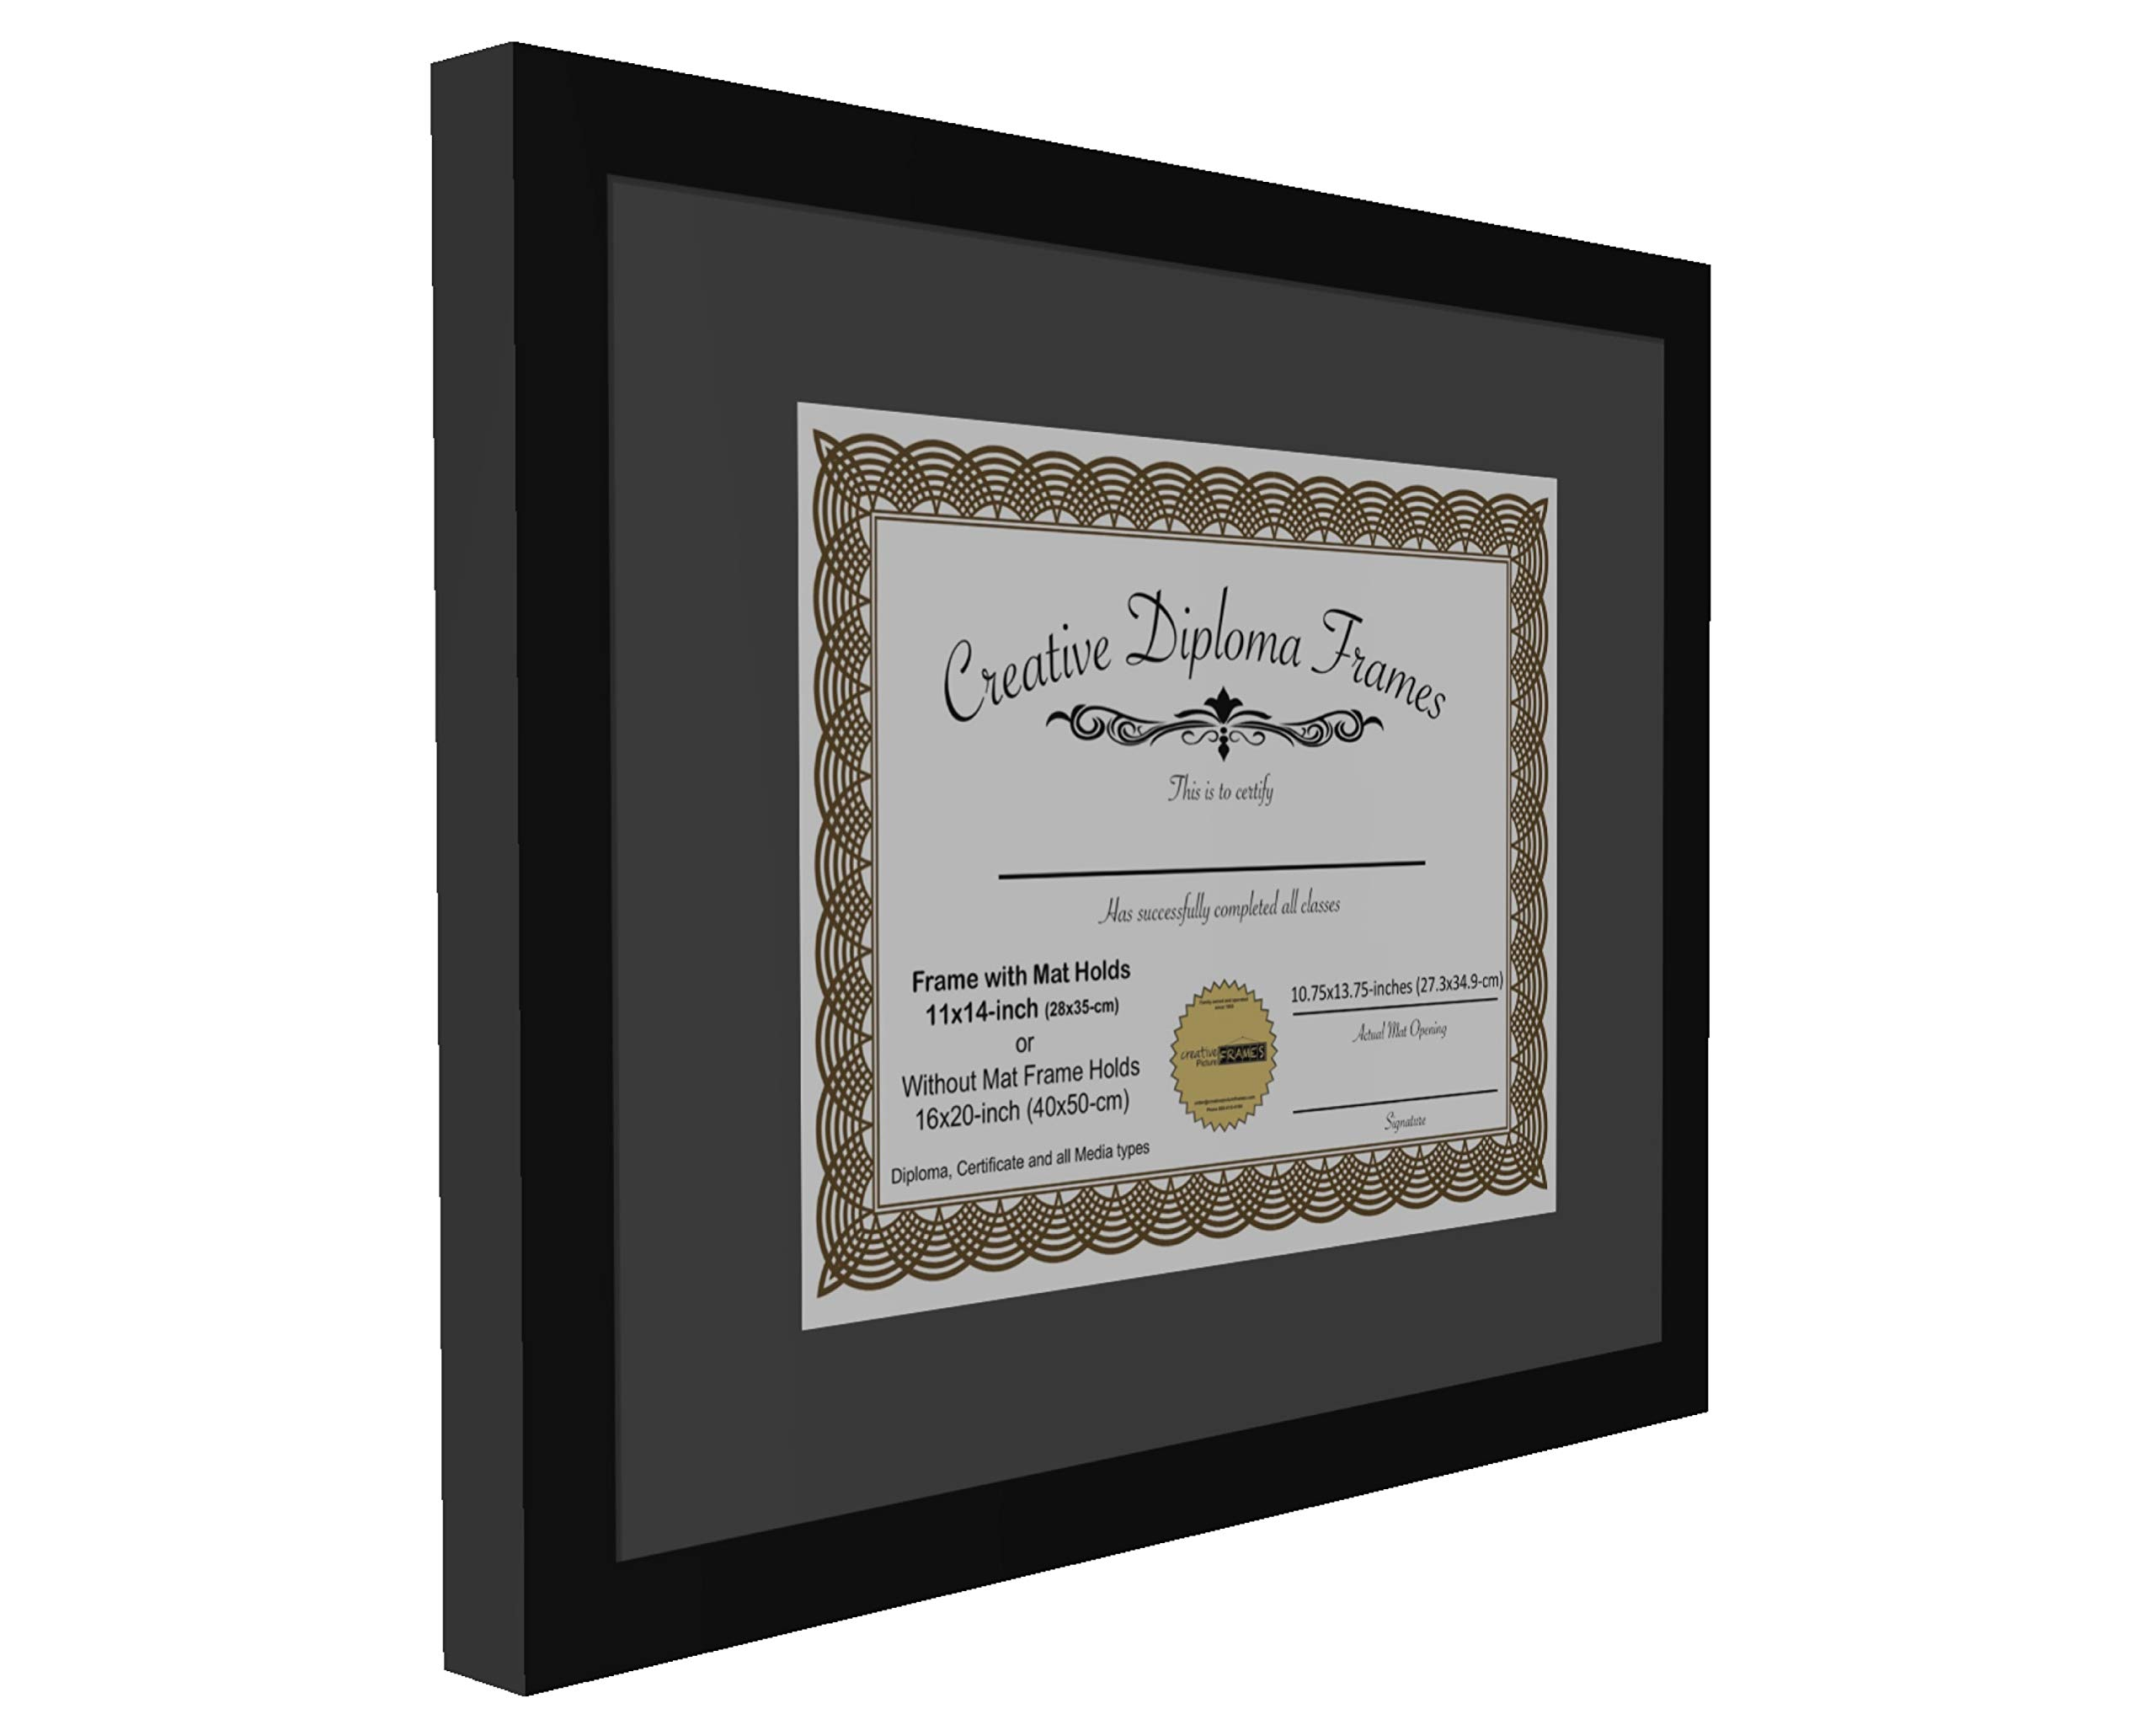 CreativePF [1620bk-b] Satin Black Large Diploma Frame with Black Mat Holds 14x17-inch Documents with Glass and Installed Wall Hanger by Creative Picture Frames (Image #3)